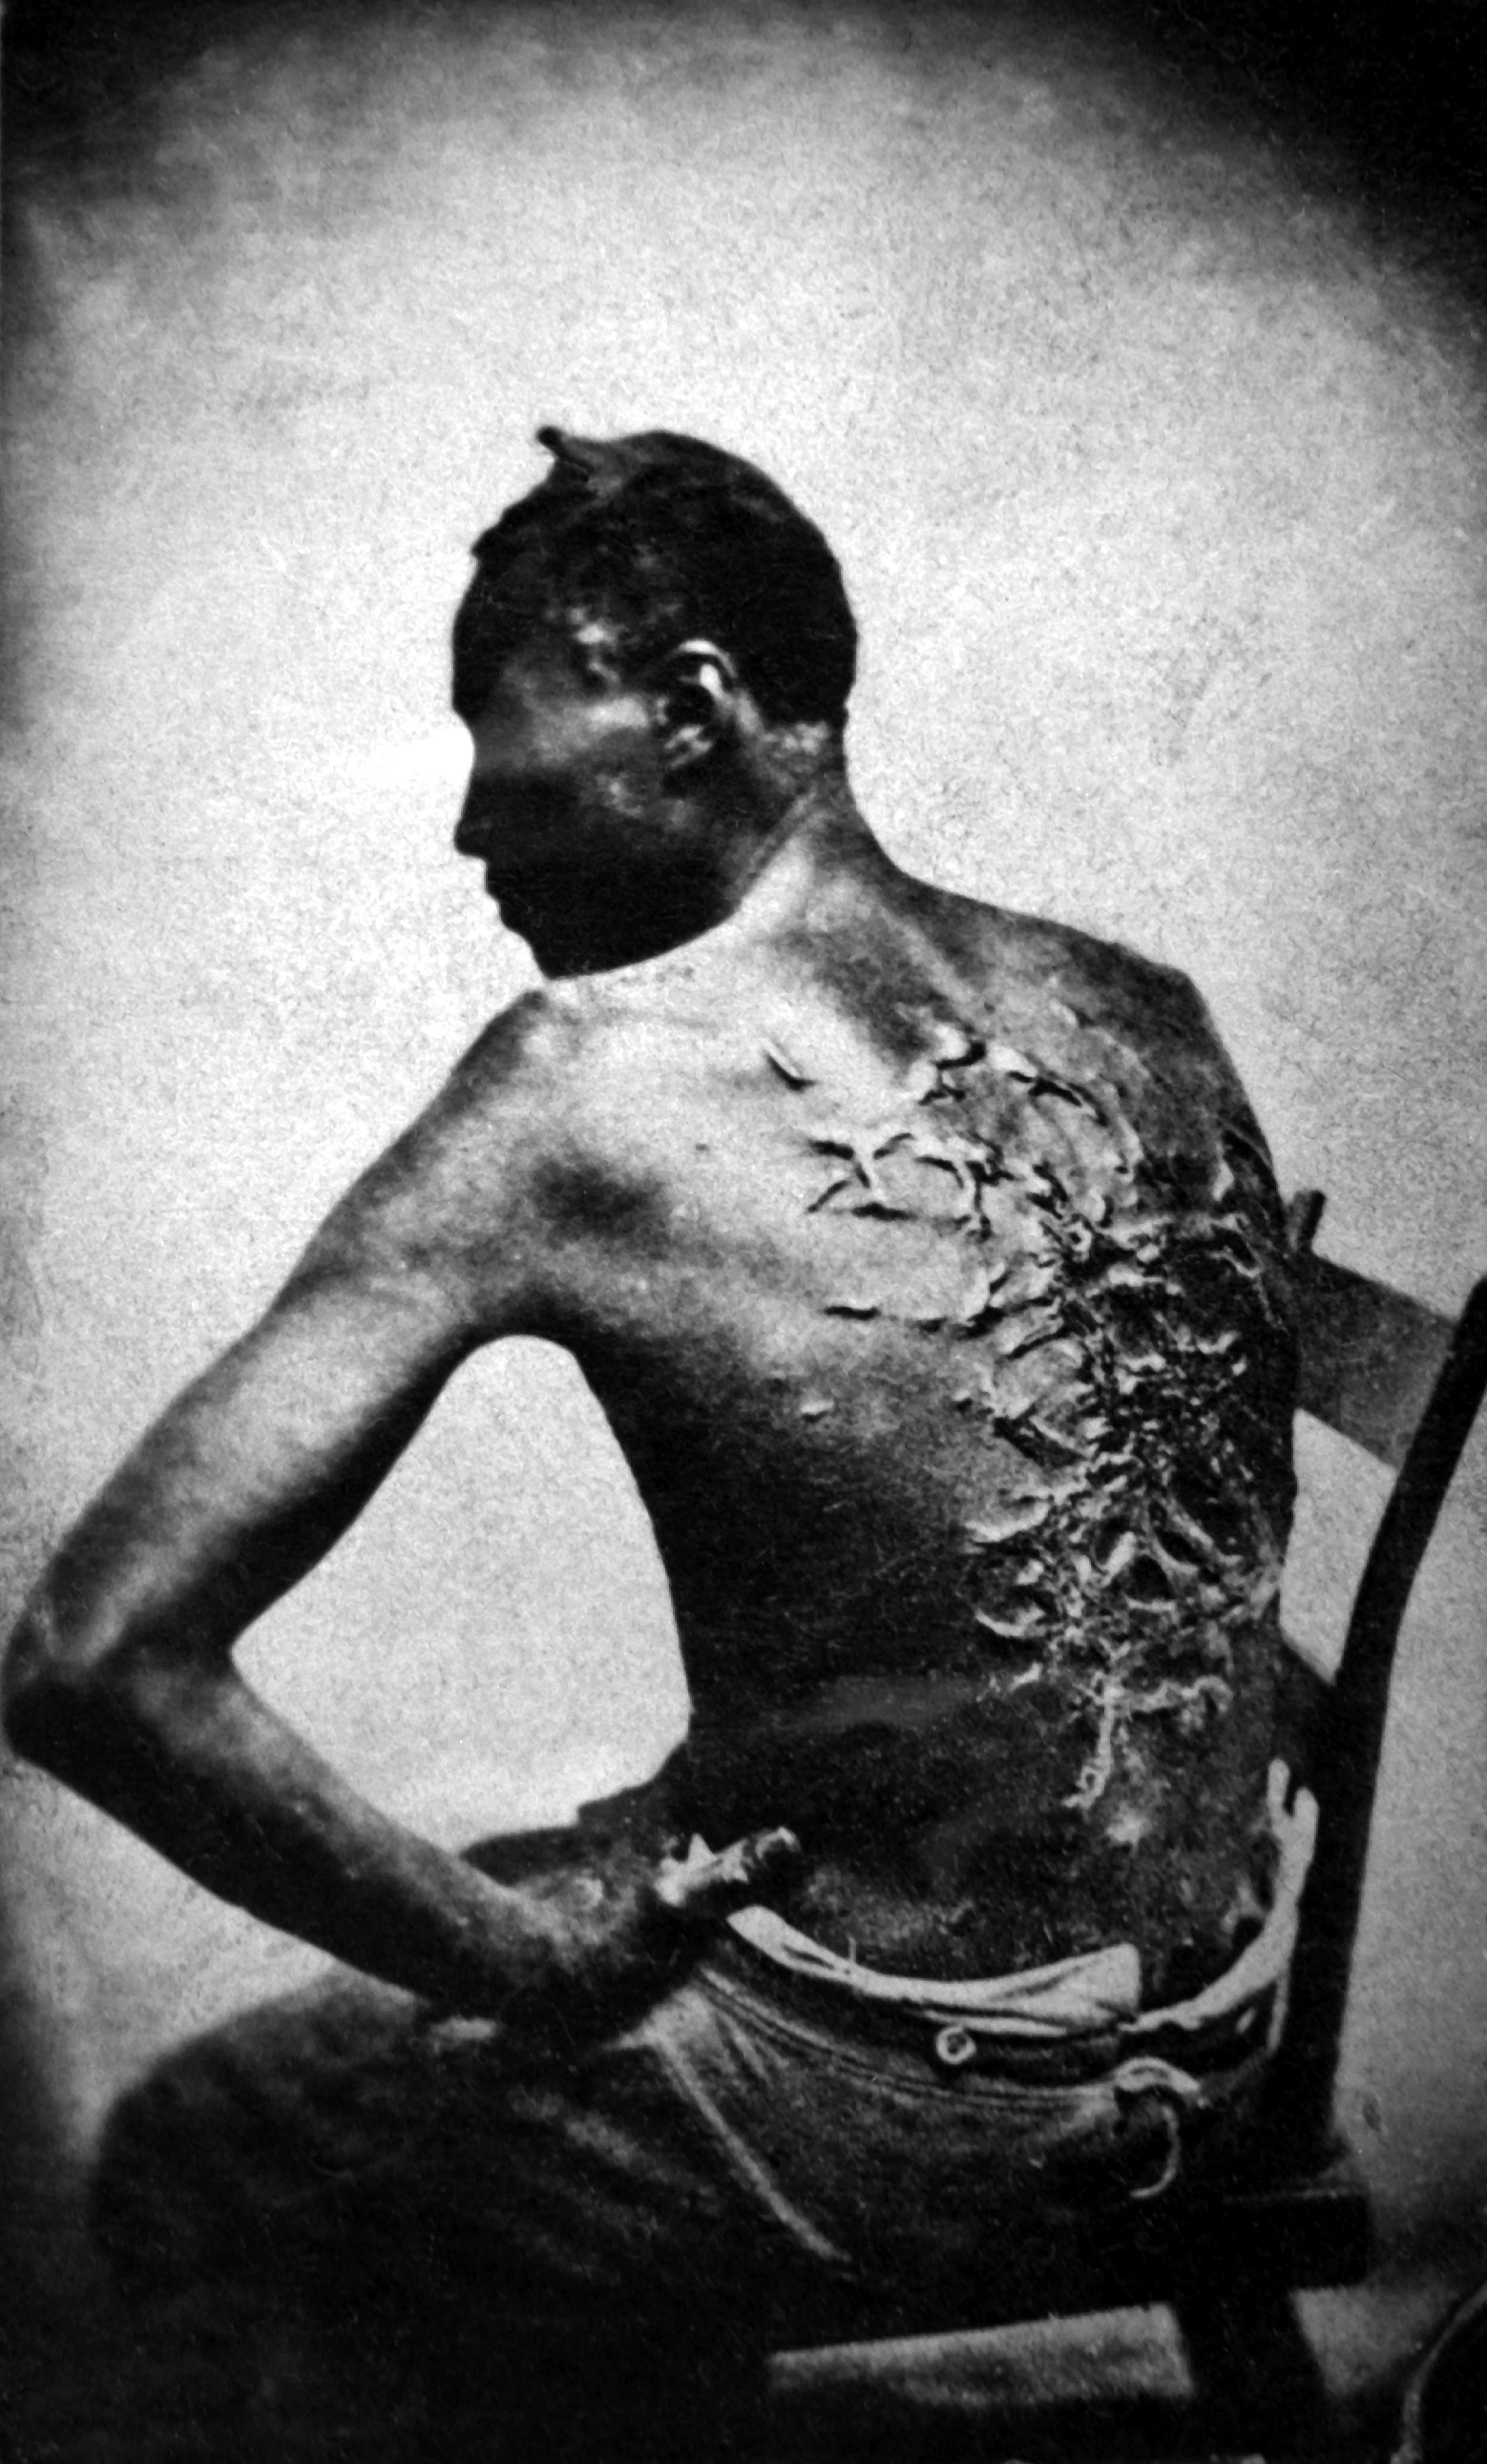 Overseer Artayou Carrier whipped me. I was two months in bed sore from the whipping. My master come after I was whipped; he discharged the overseer. The very words of poor Peter, taken as he sat for his picture. Baton Rouge, La., April 2, 1863. (War Dept.) NARA FILE #: 165-JT-230 WAR & CONFLICT BOOK #: 109